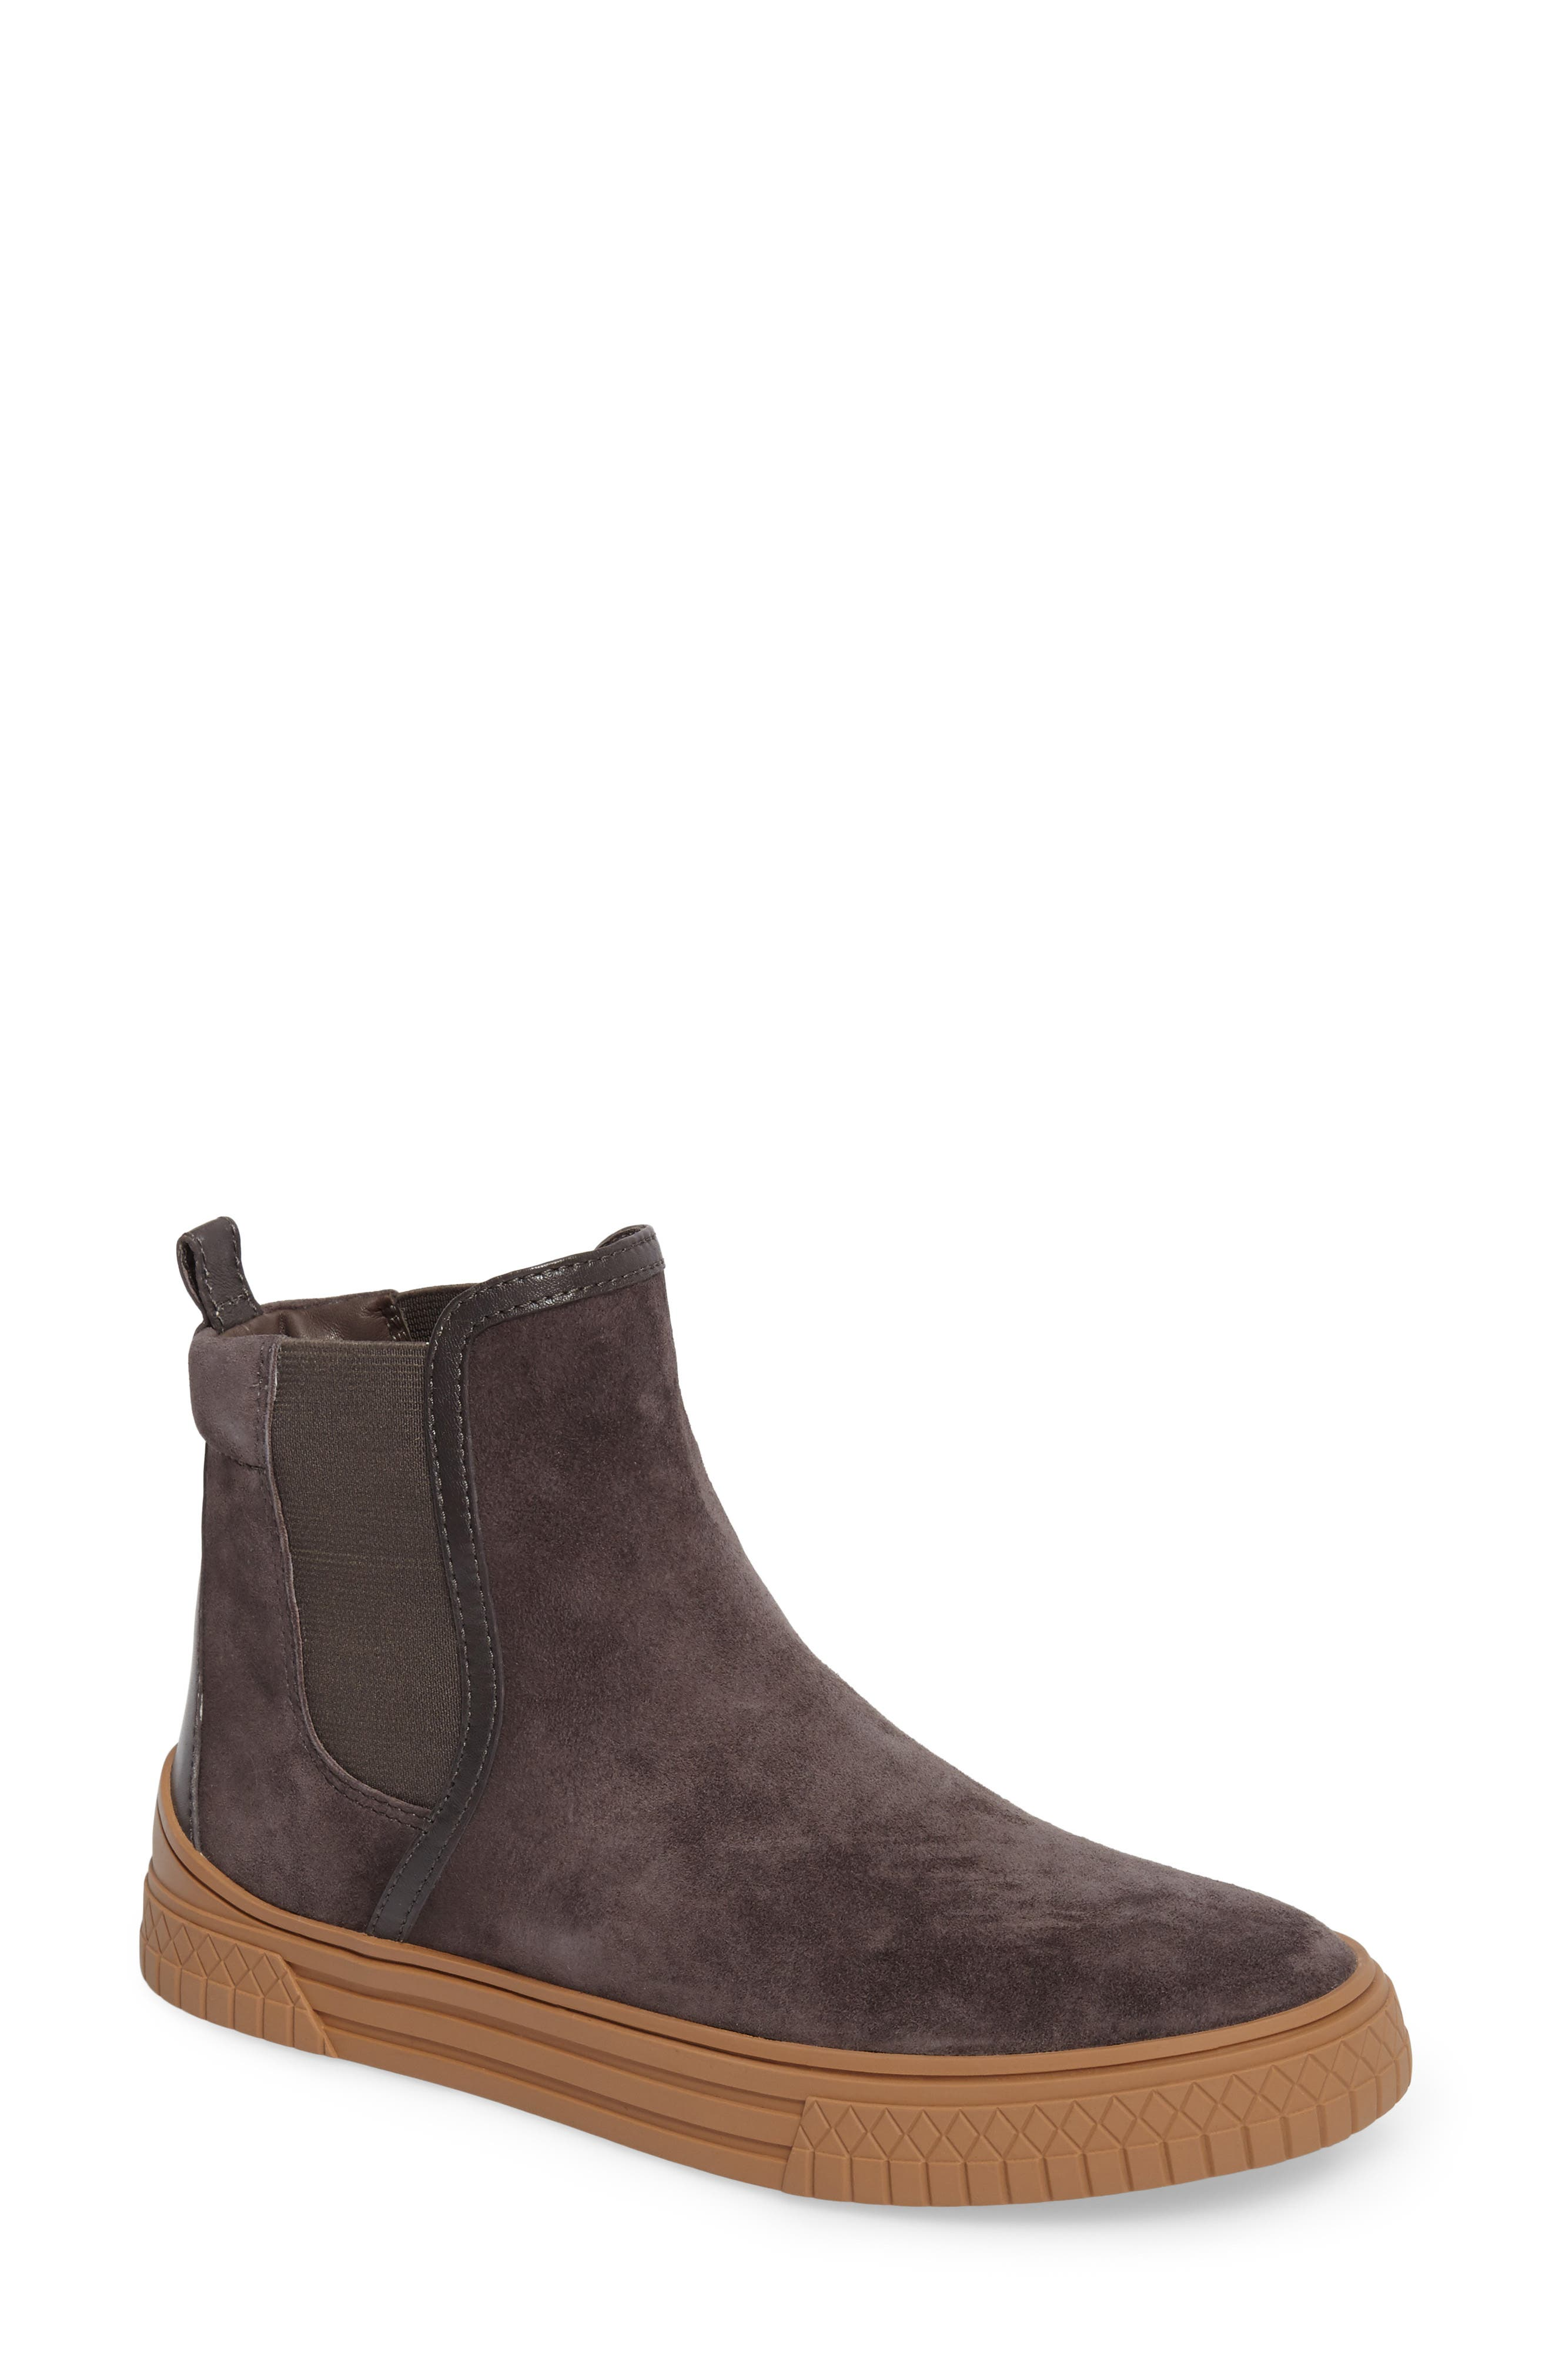 Linea Paolo Gage Chelsea Boot (Women)